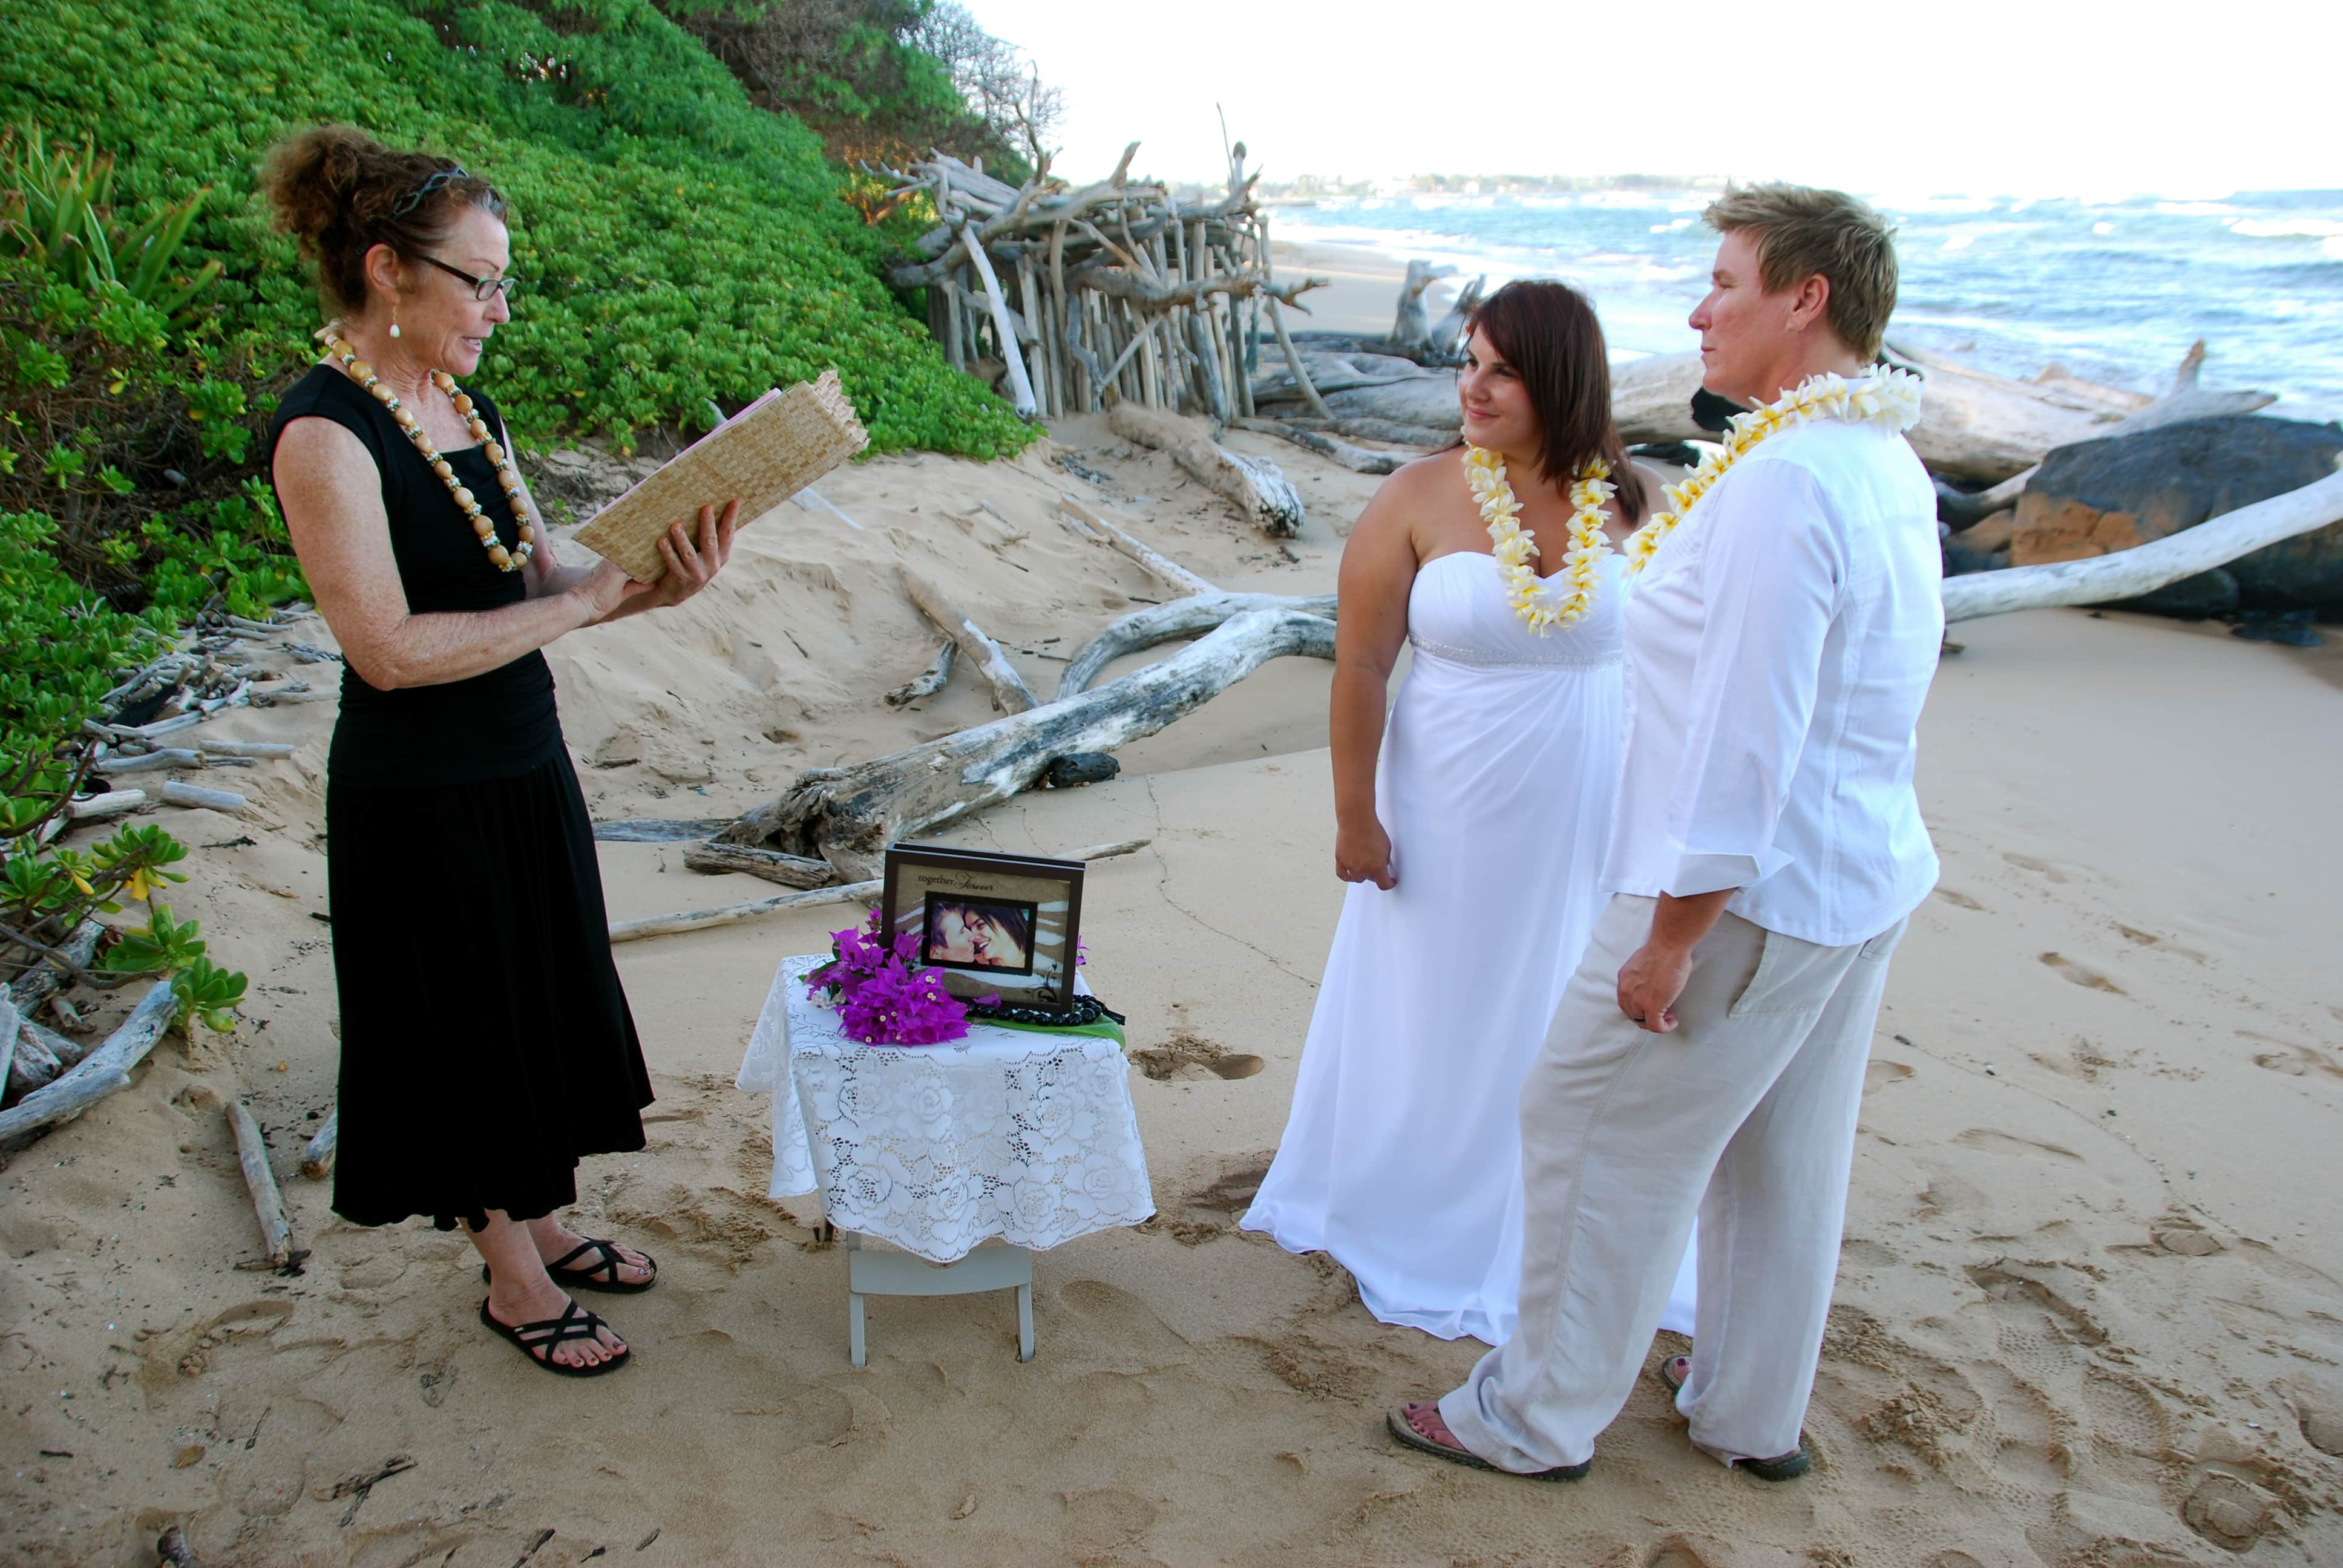 All the Kauai gay weddings below were coordinated and photographed by Aloha  Ever After (click images to see a larger version).